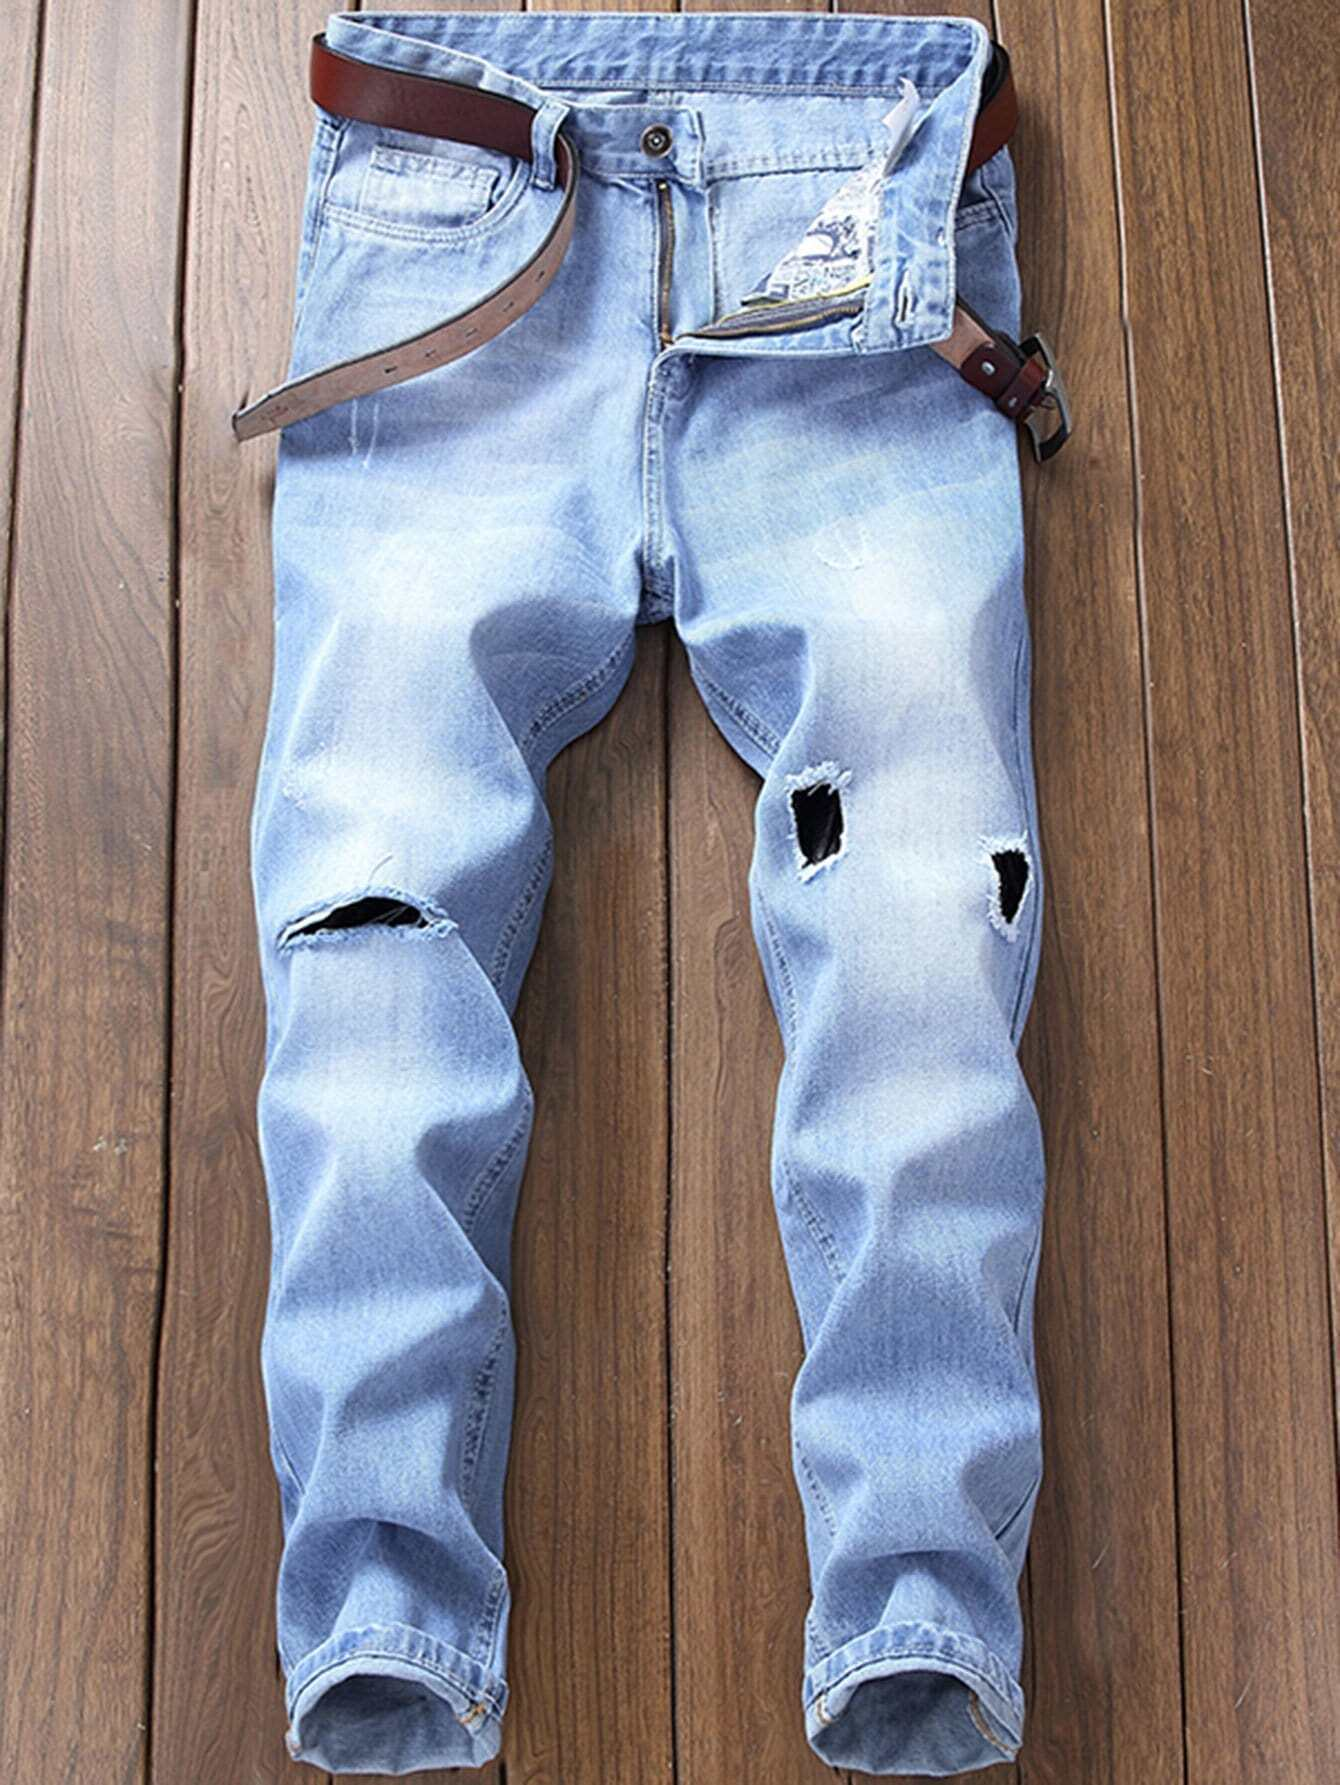 Men Ripped Slim Jeans nostalgia retro design fashion men jeans european stylish dimensional knee frayed hole destroyed ripped jeans men biker jeans